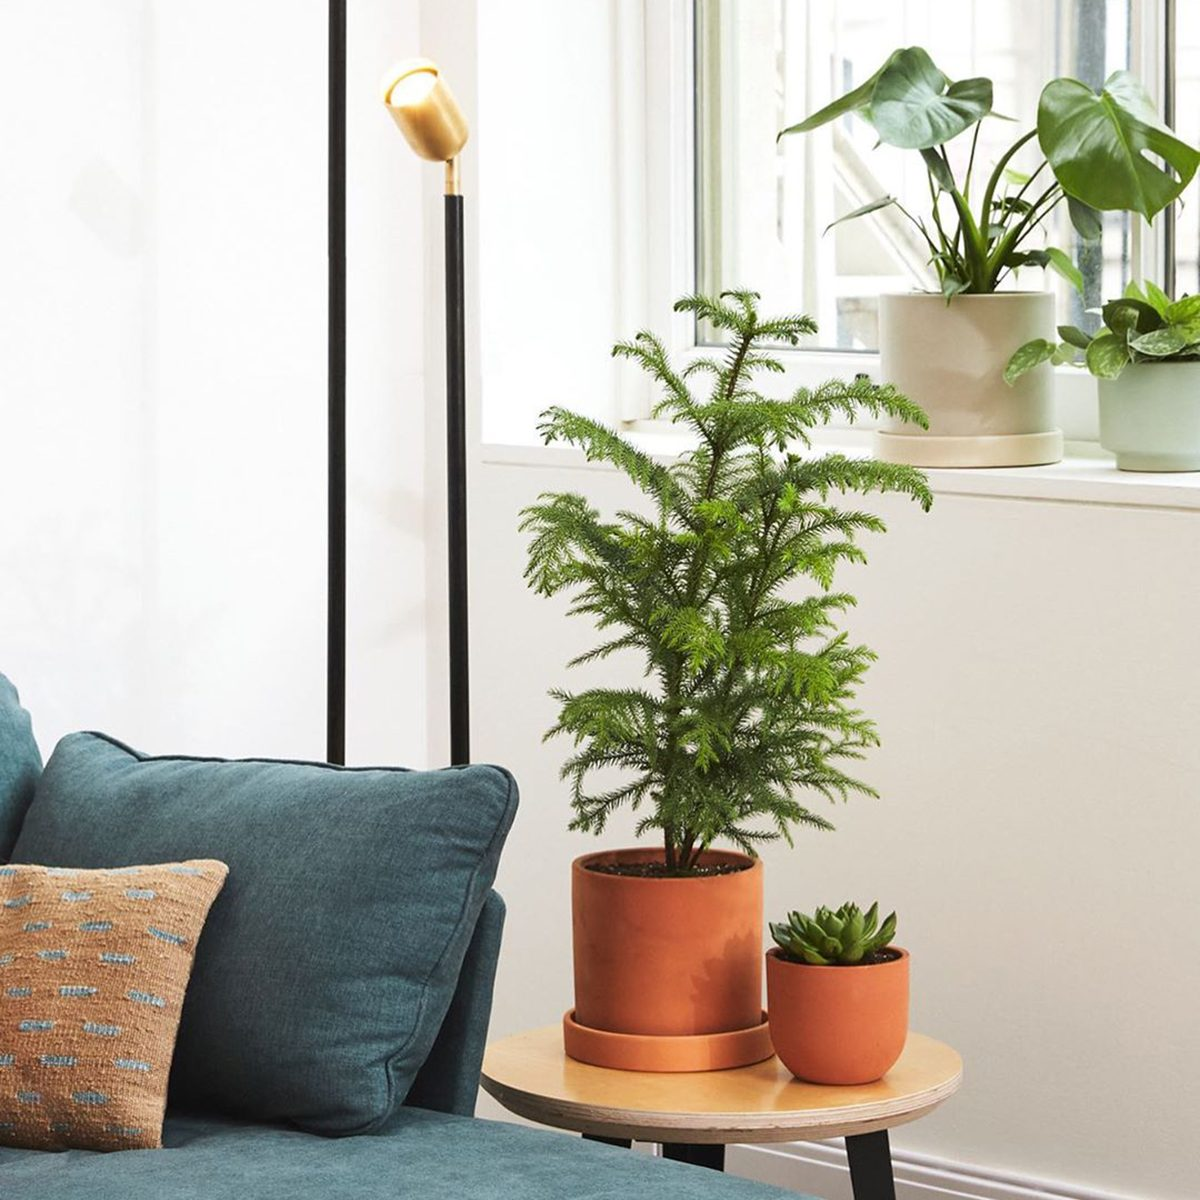 The Sill potted plants